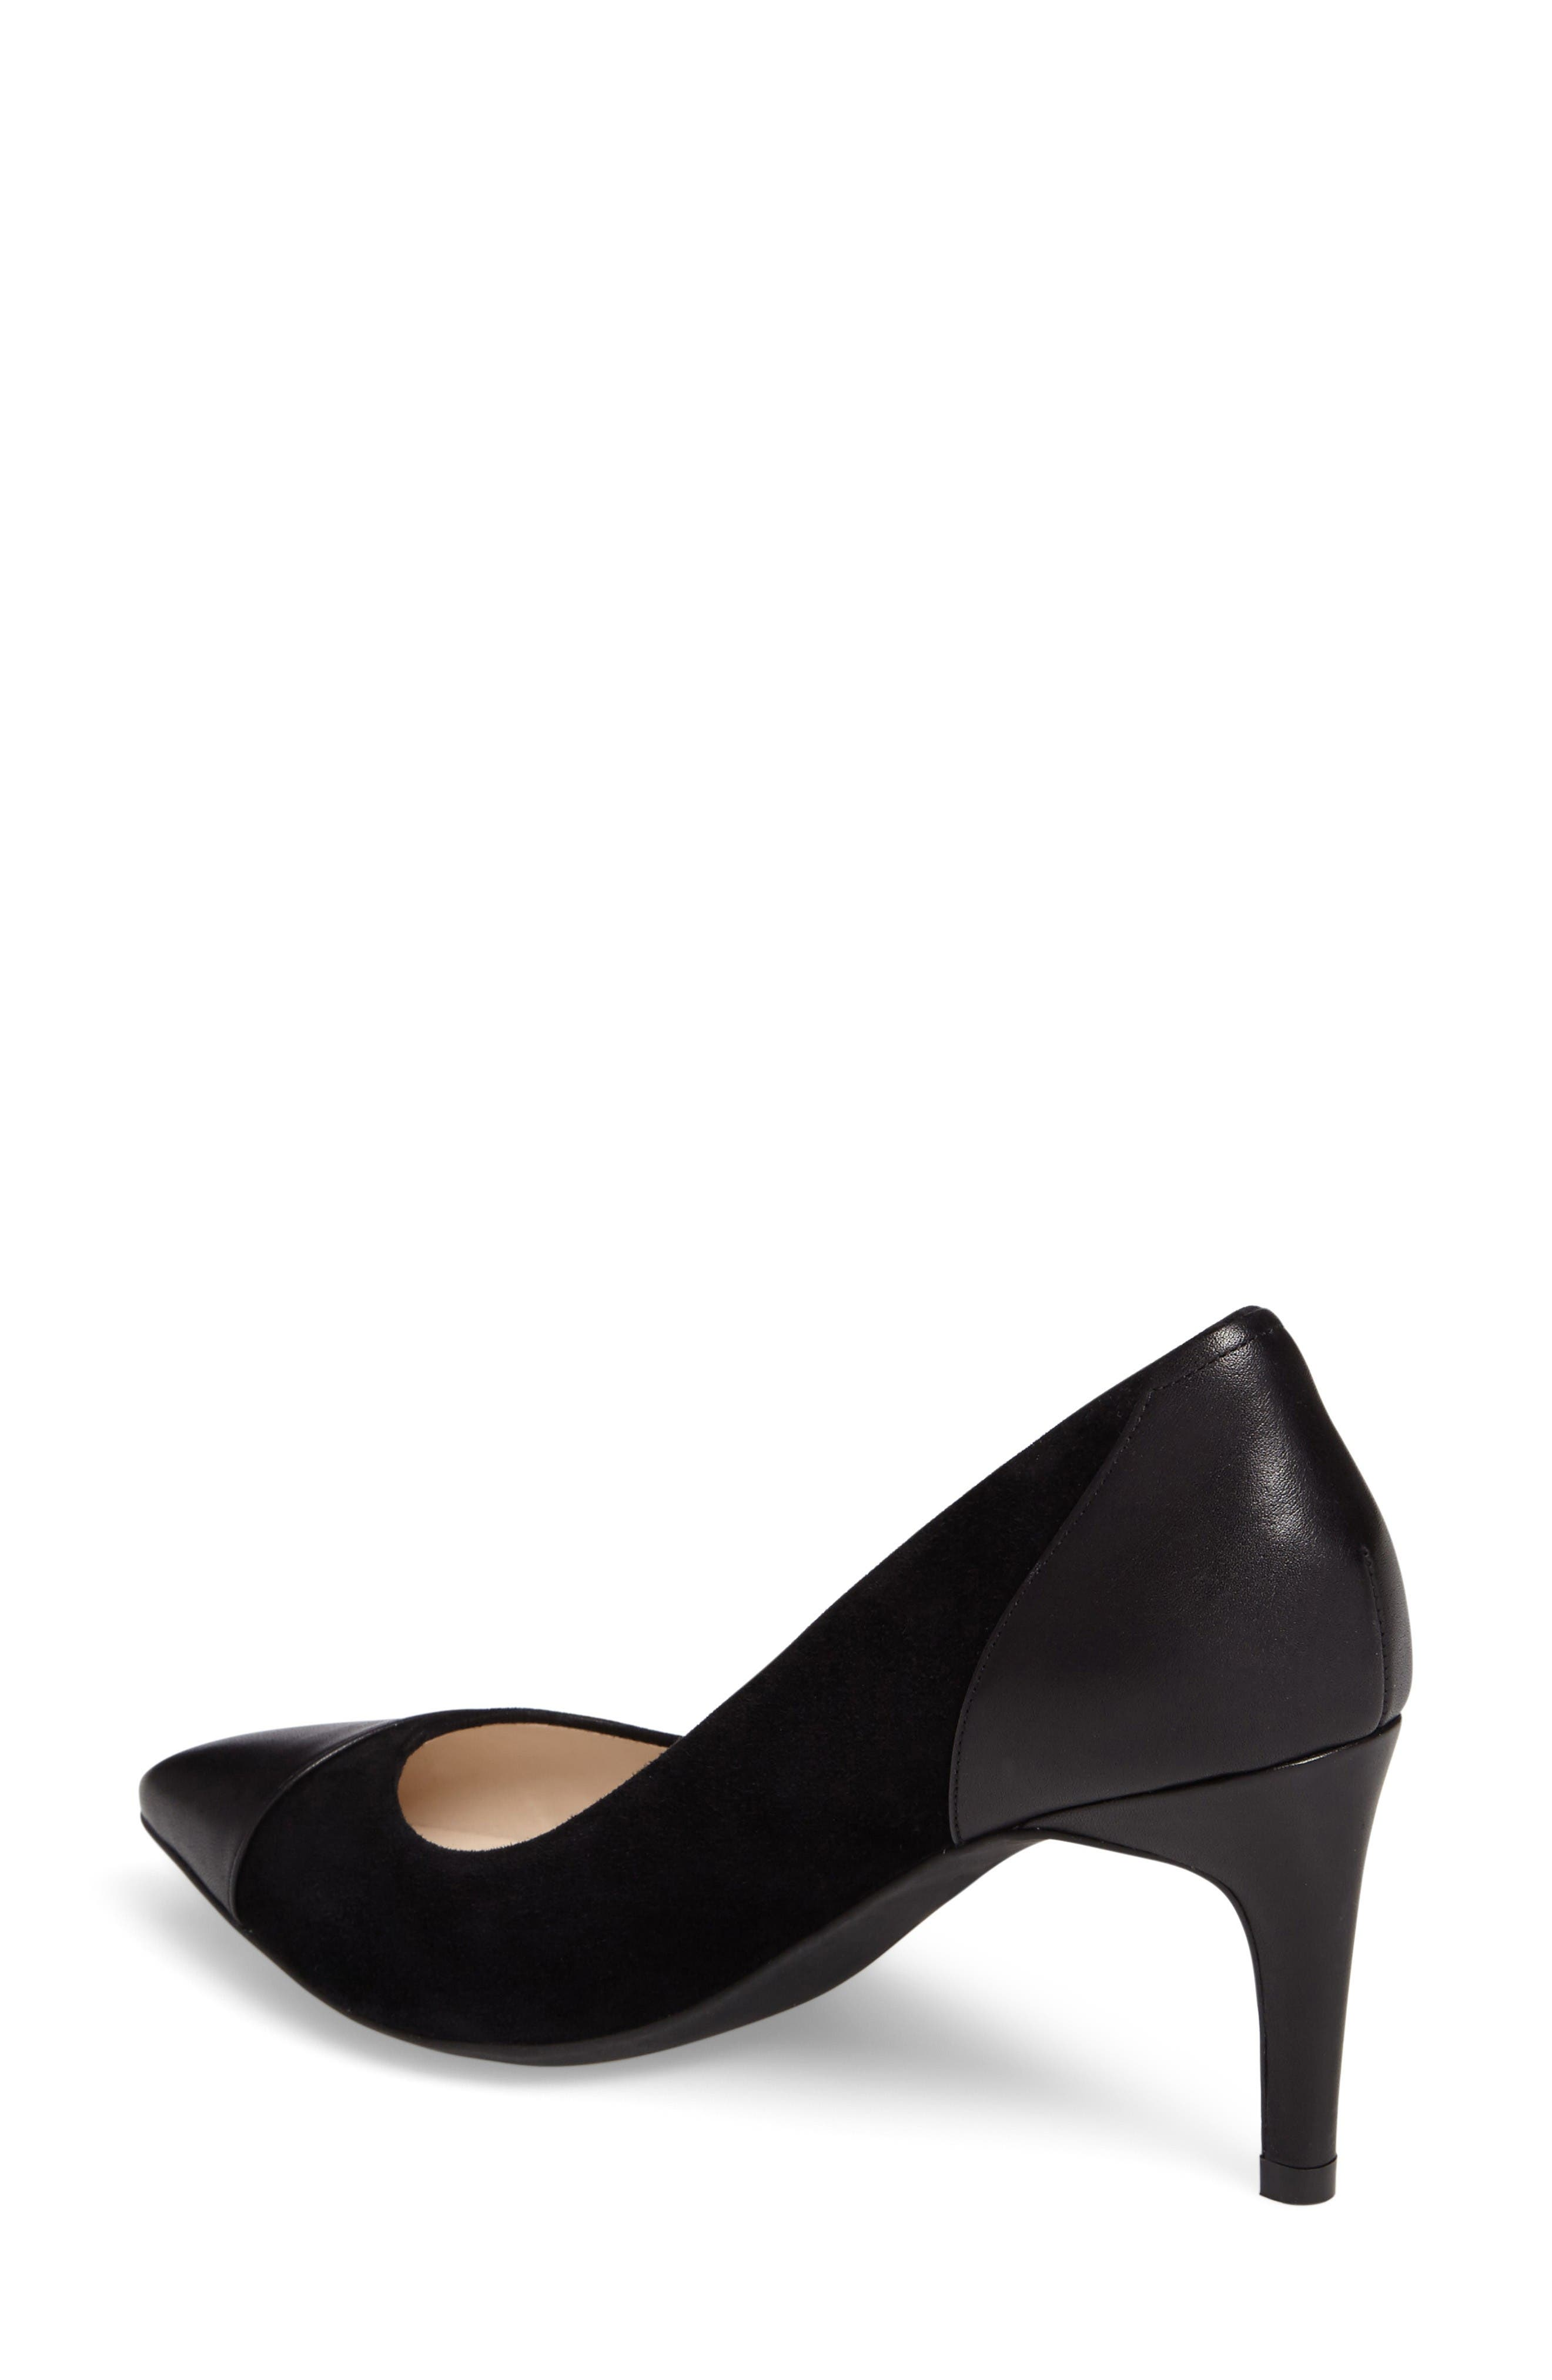 Shayla Pointy Toe Pump,                             Alternate thumbnail 2, color,                             Black Suede